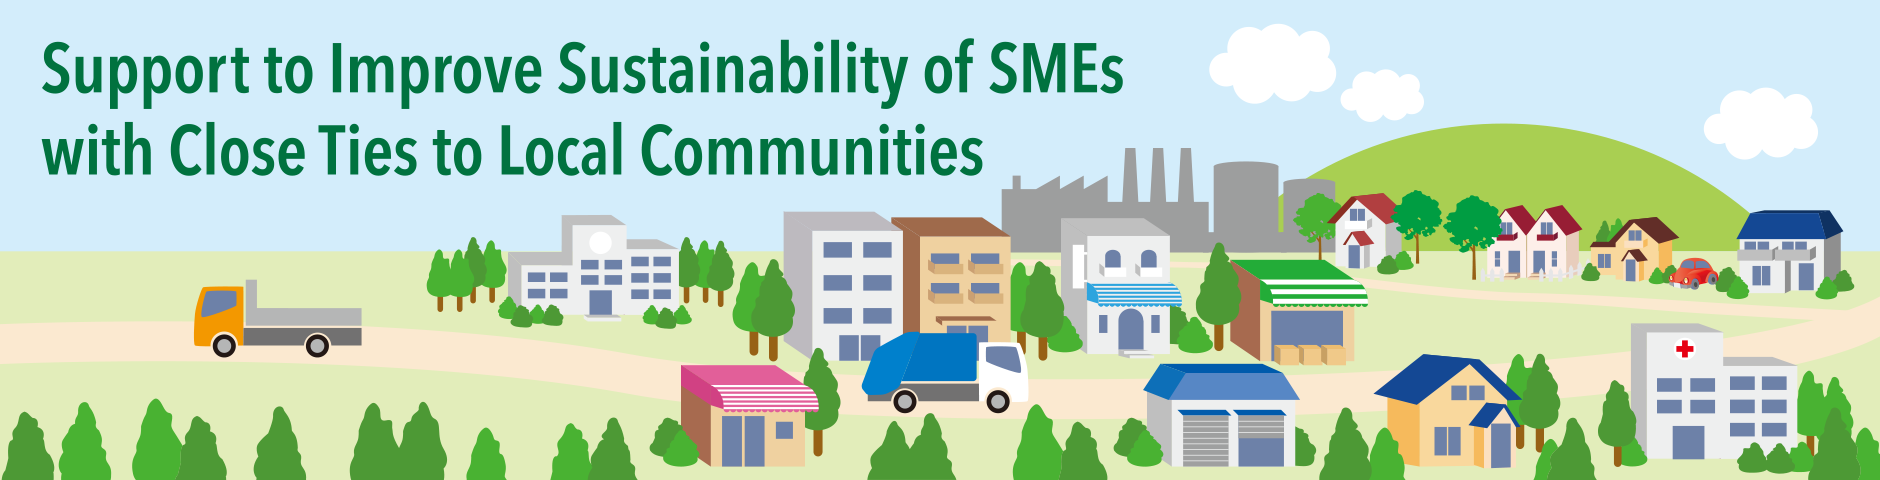 Support to Improve Sustainability of SMEs with Close Ties to Local Communities